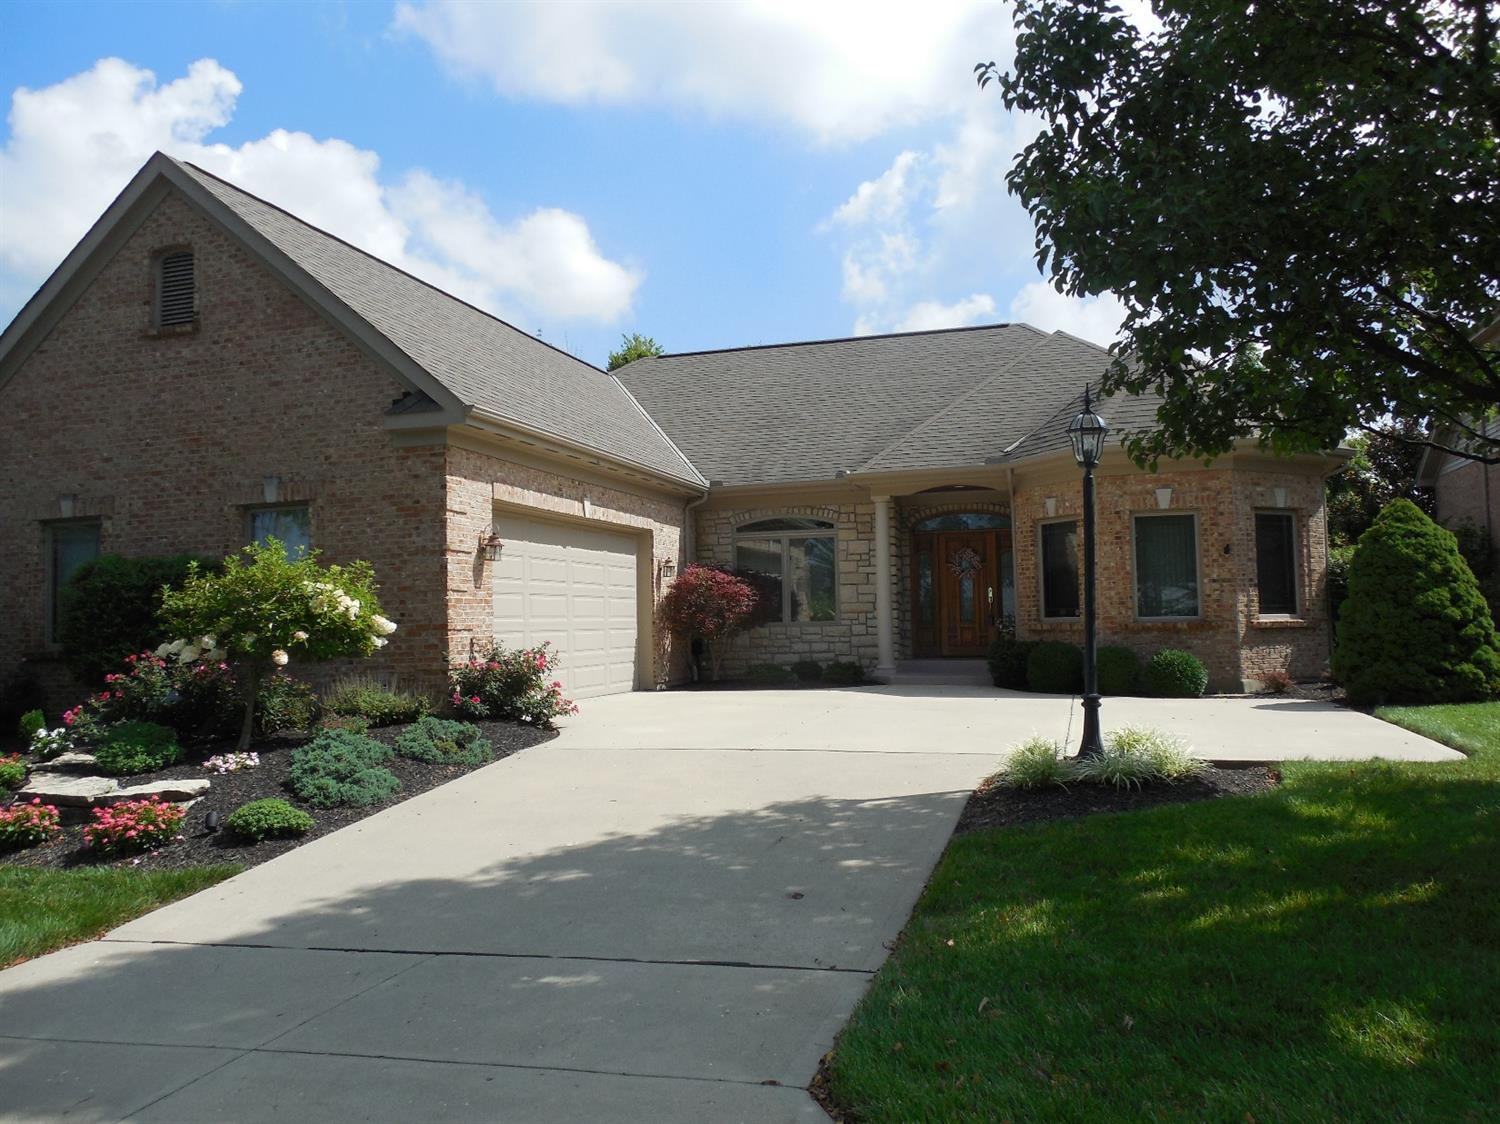 4156 St Cloud Wy Miami Twp. (West), OH